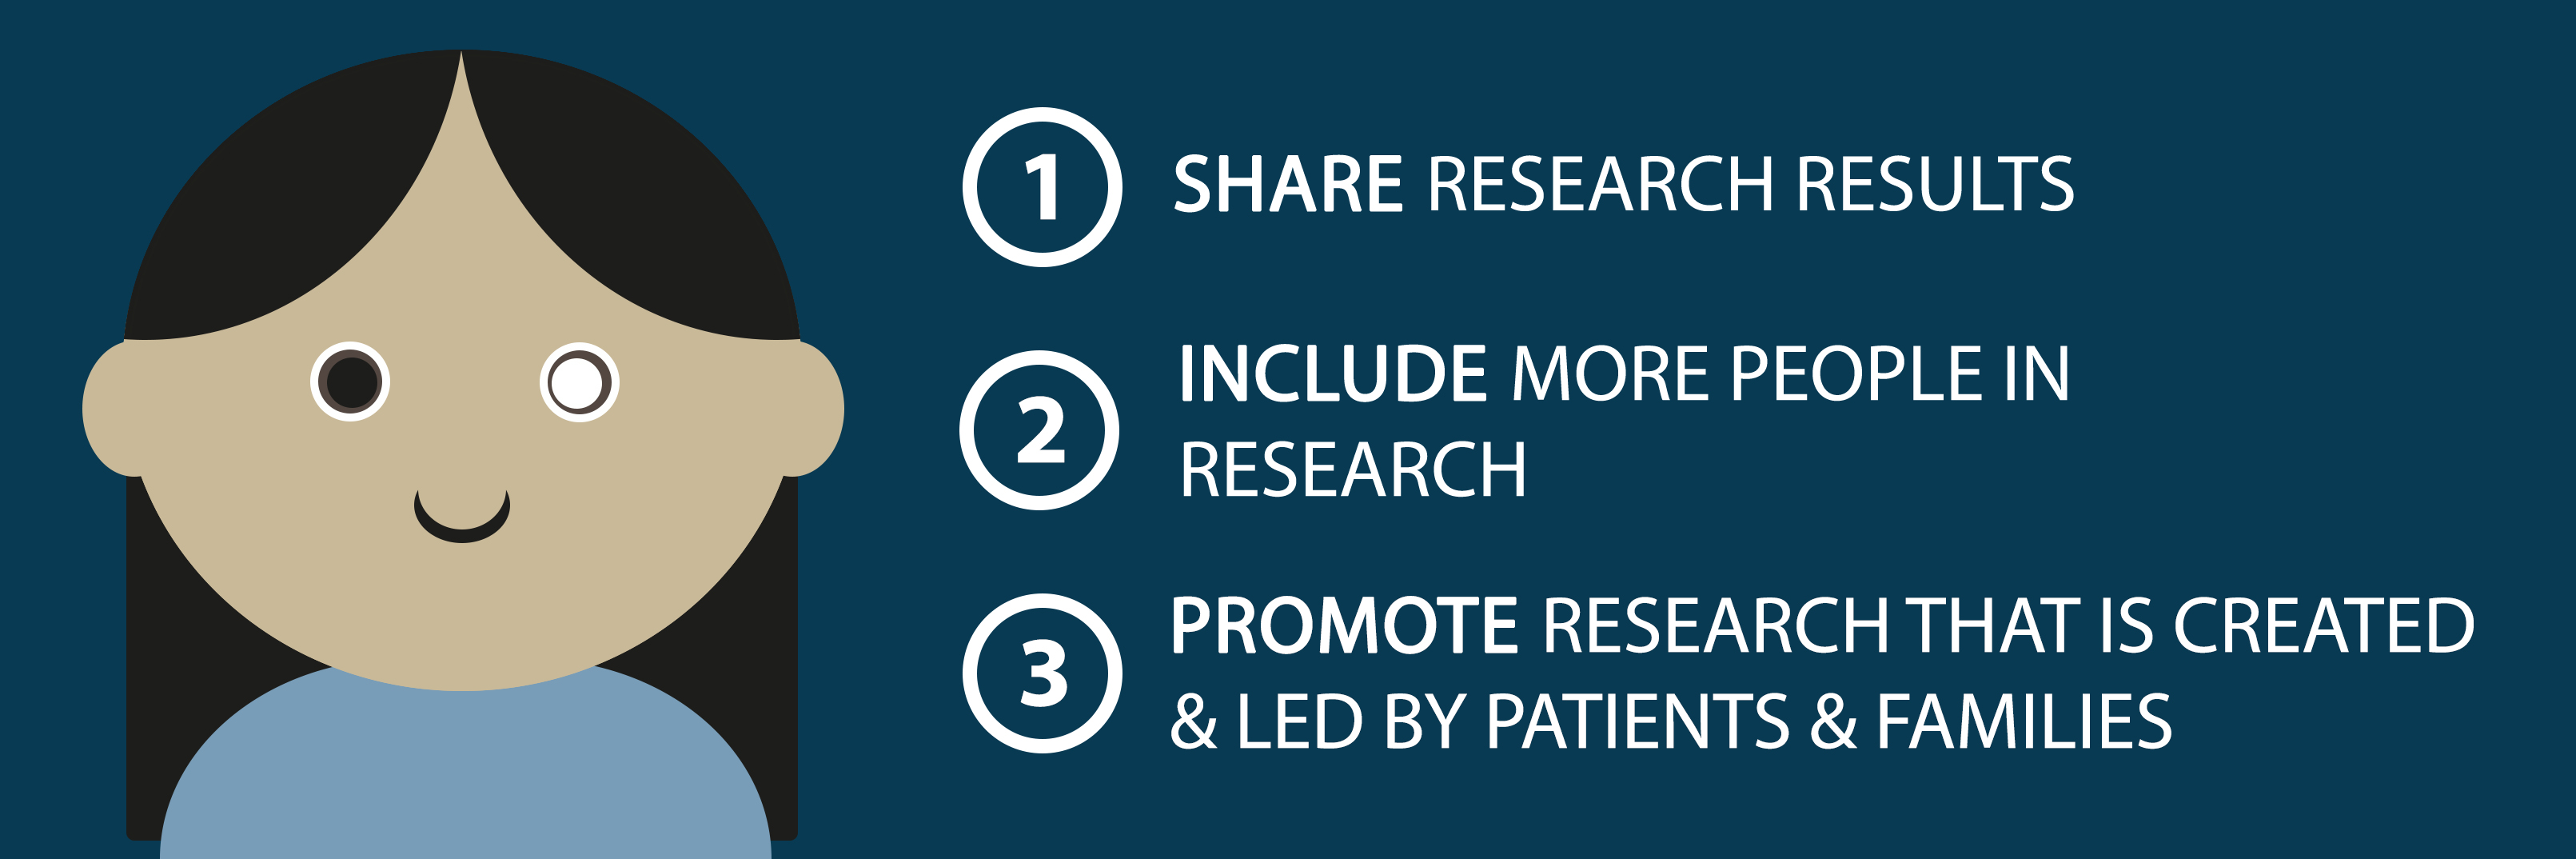 1) Share research results, 2) Include more people in research, and 3) Promote research that is created and led by patients and families